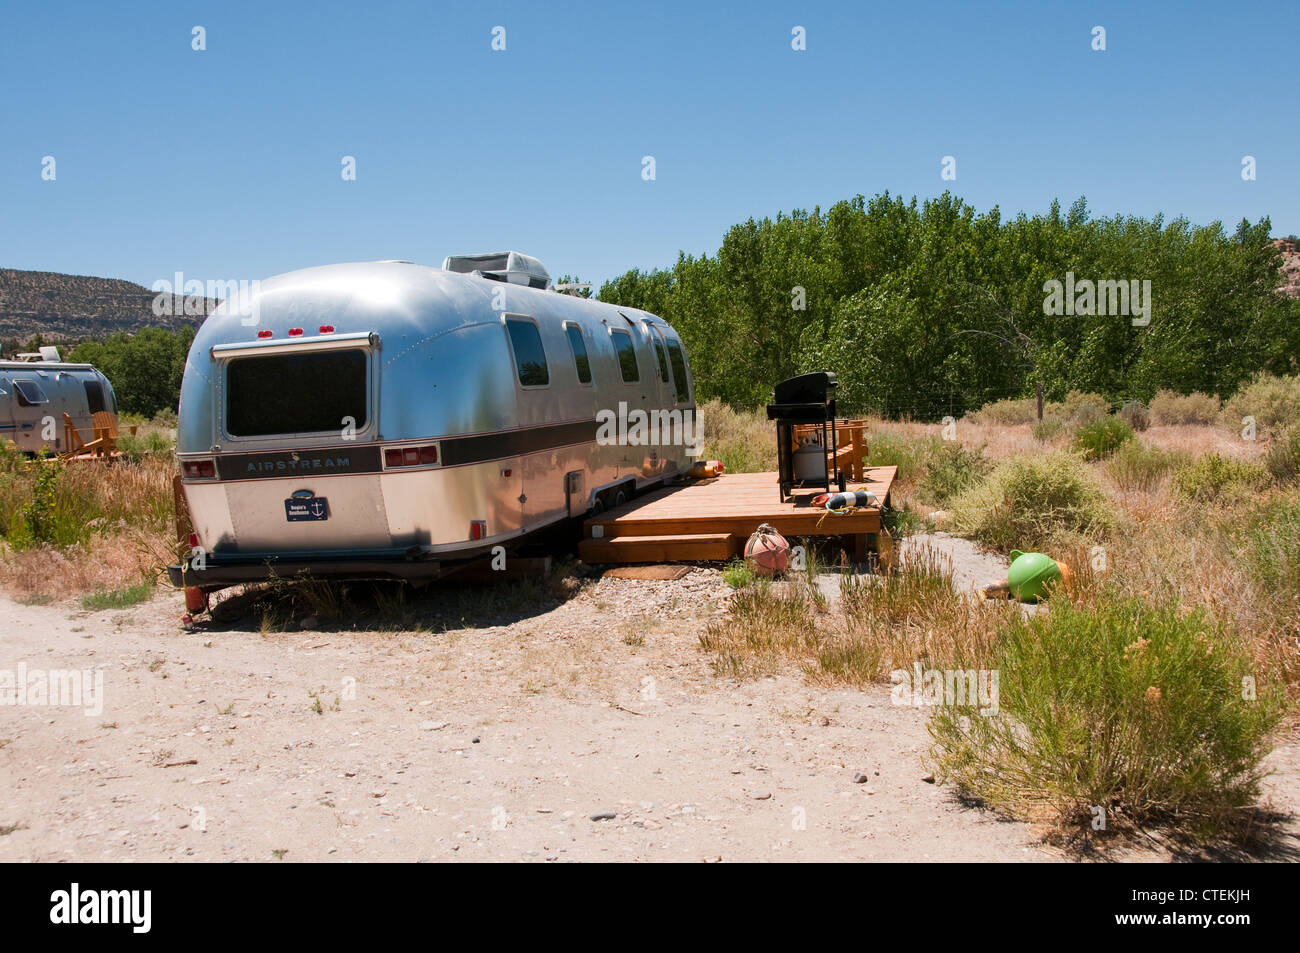 USA, Utah, classic Airstream travel trailers available as lodging at the Shooting Star Drive-In in Escalante. - Stock Image